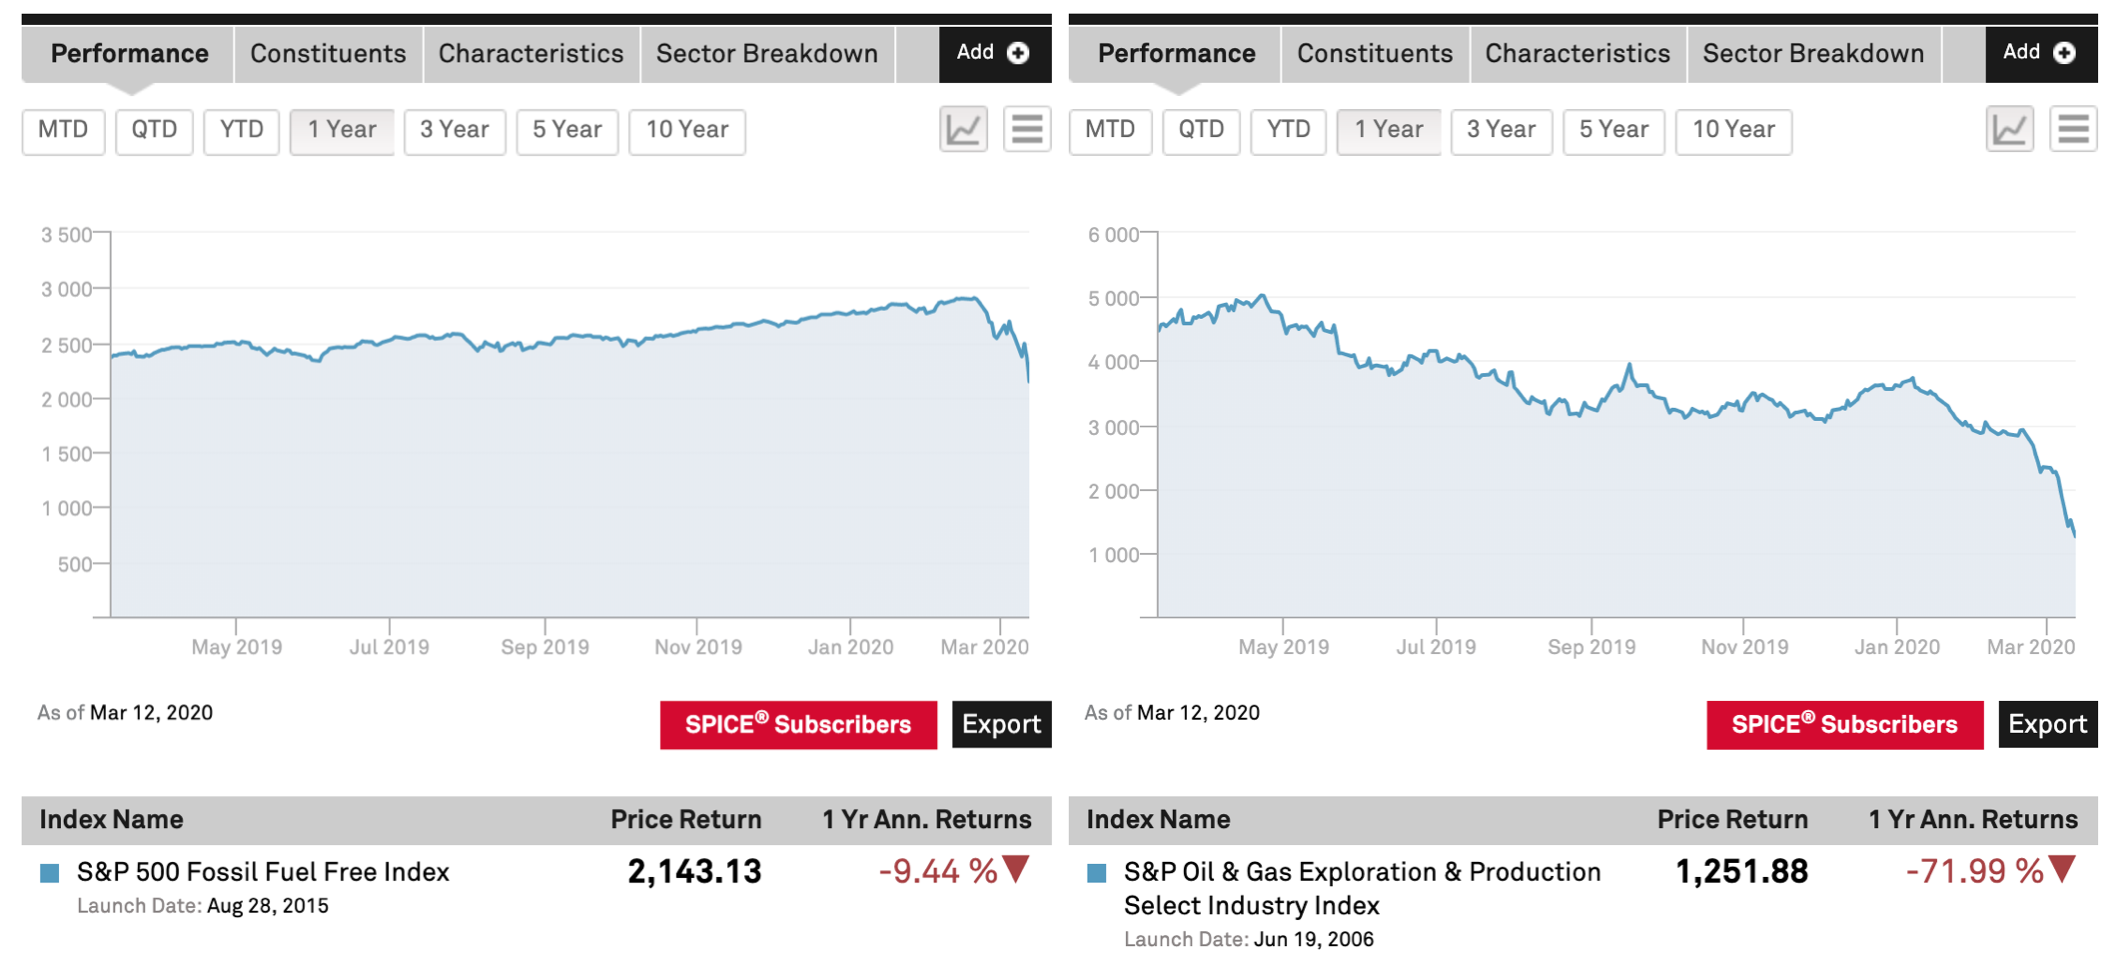 Image of oil and gas vs non-fossil fuel stock indices with permission of S&P